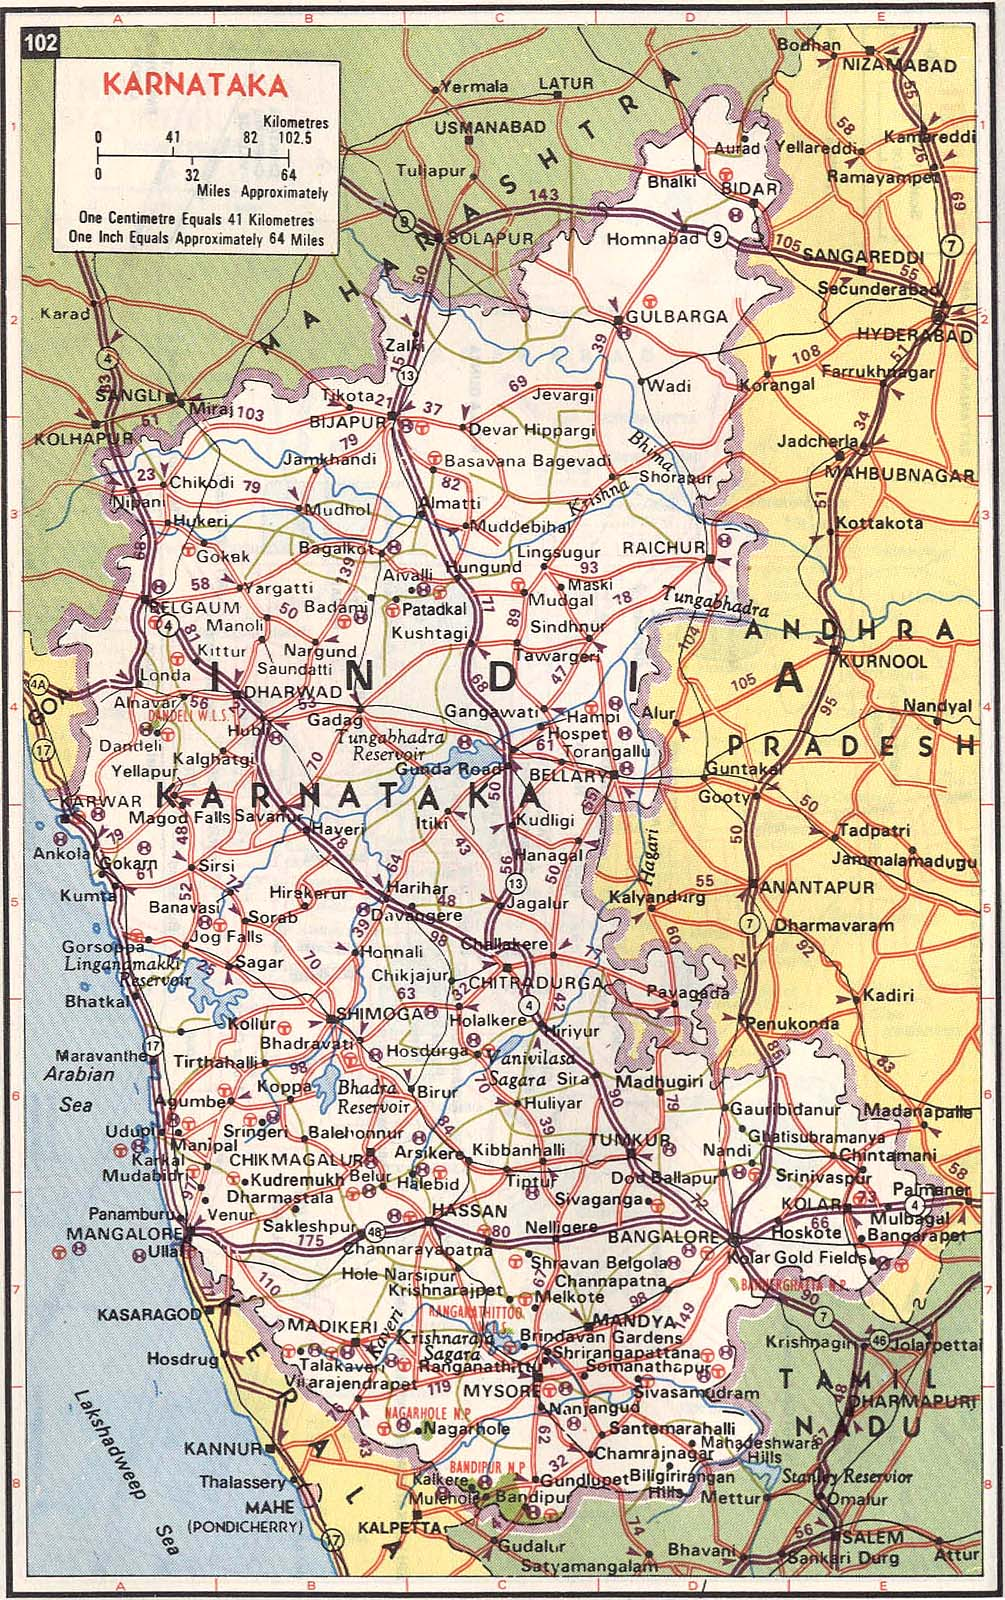 Karnataka India Road Map